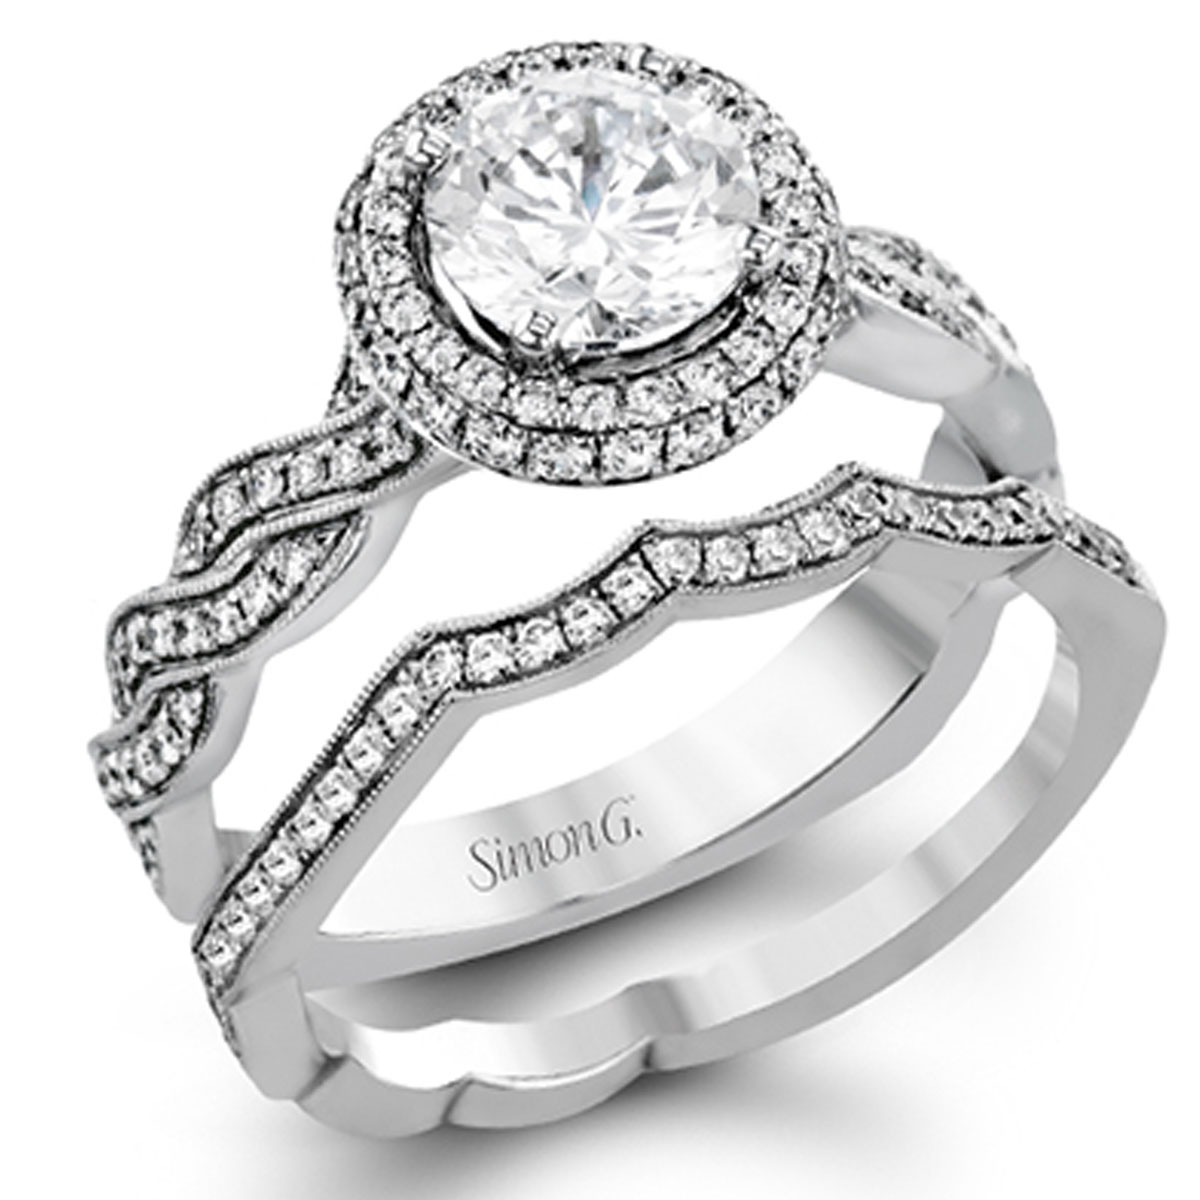 Simon G Engagement Rings 18k White Gold 53ctw Accents